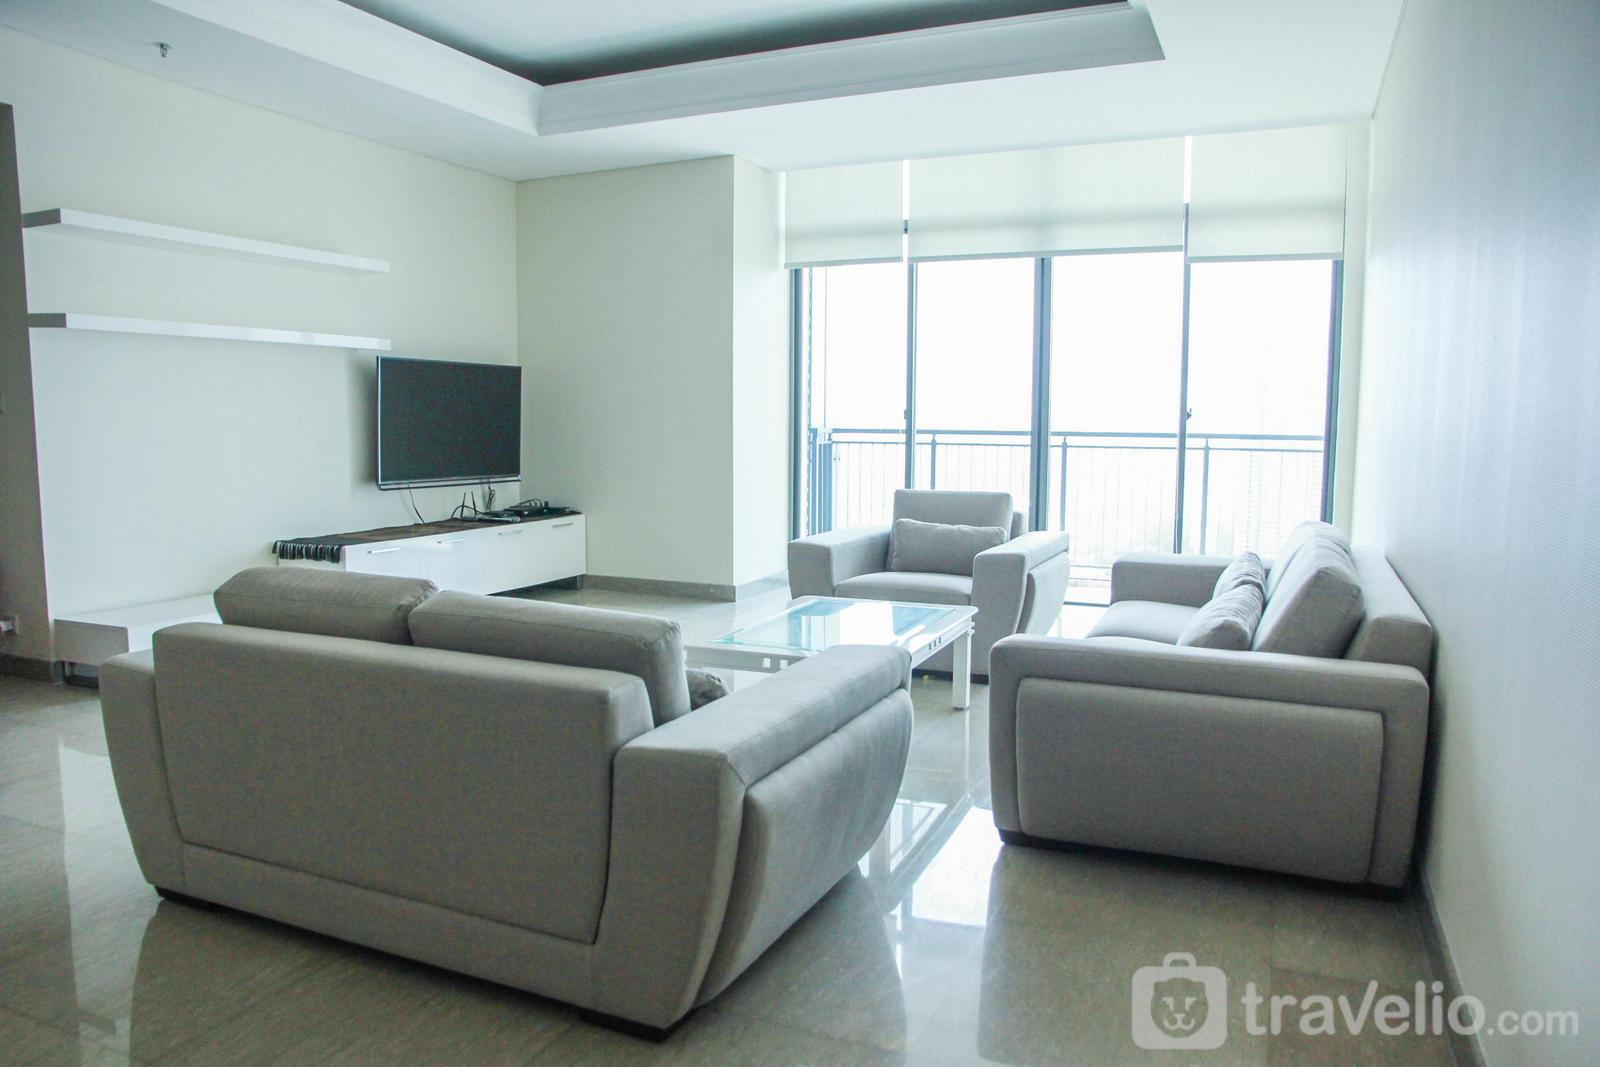 Essence Dharmawangsa Kebayoran - Luxurious 4BR Essence Dharmawangsa Apartment By Travelio